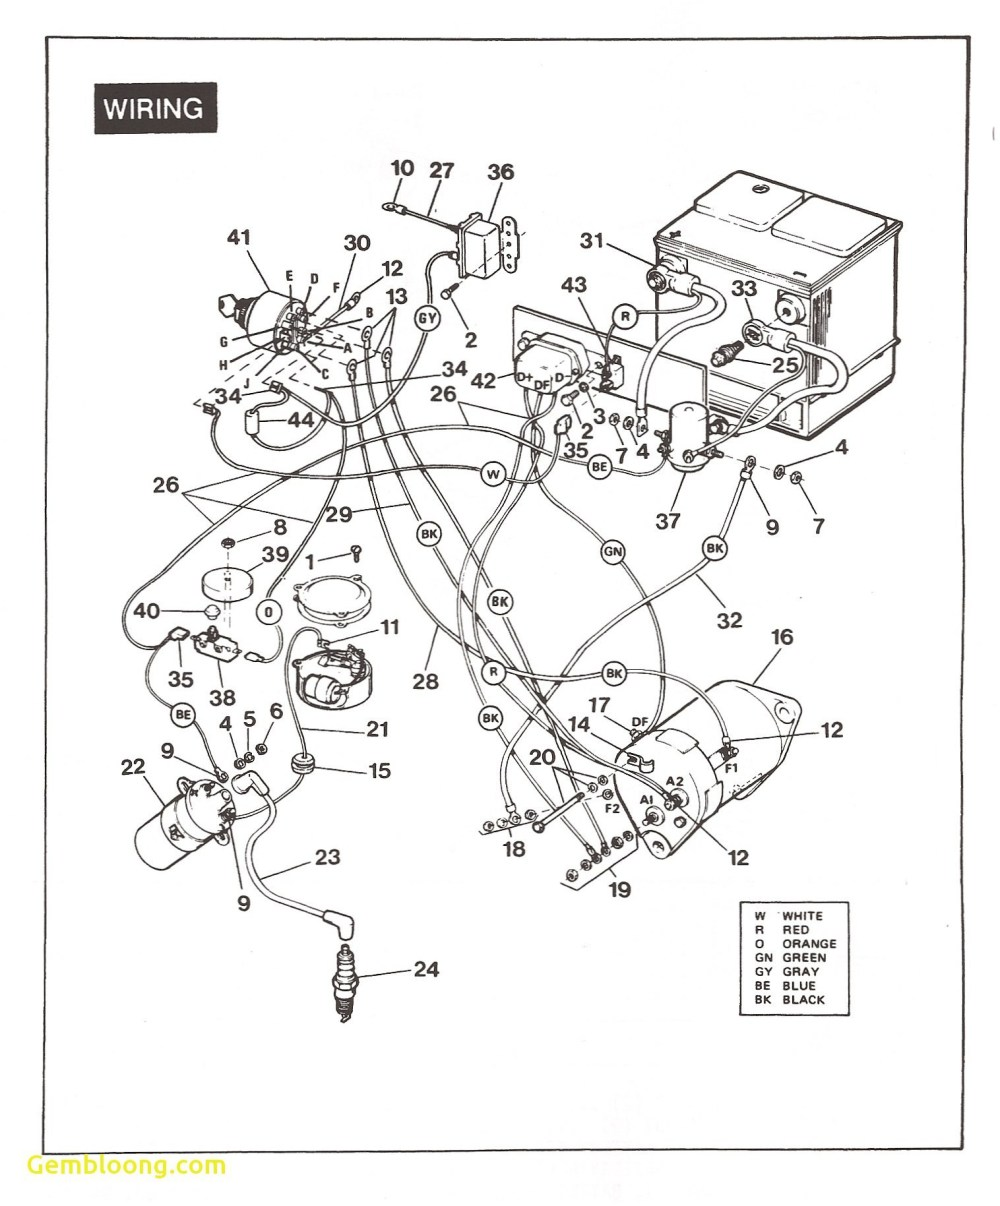 medium resolution of  1999 club car wiring diagram columbia par car 48v wiring diagram